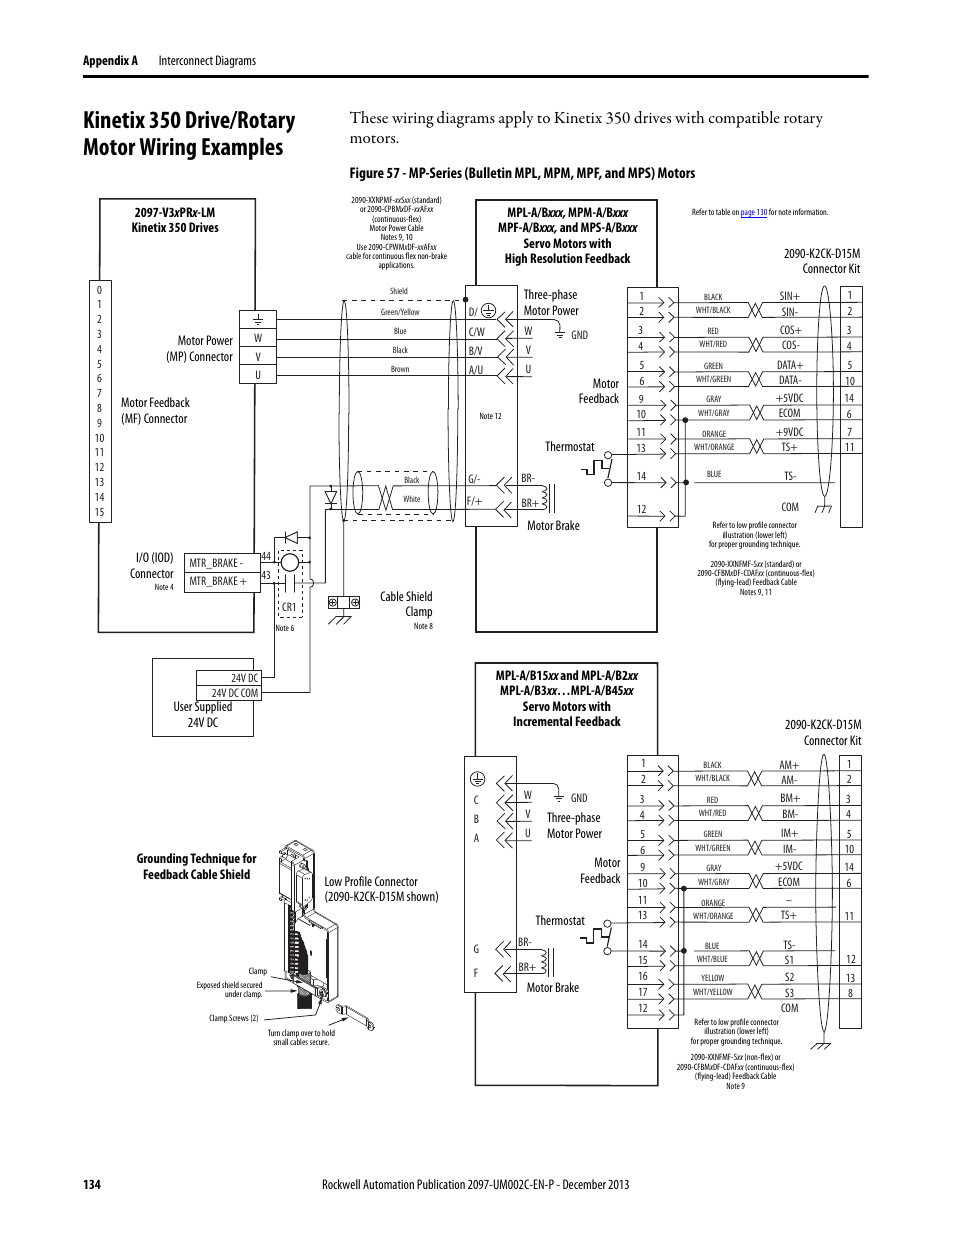 Wiring diagram for 82 041 rockwell motor diy enthusiasts wiring kinetix 350 drive rotary motor wiring examples for t for i rh manualsdir com swarovskicordoba Choice Image